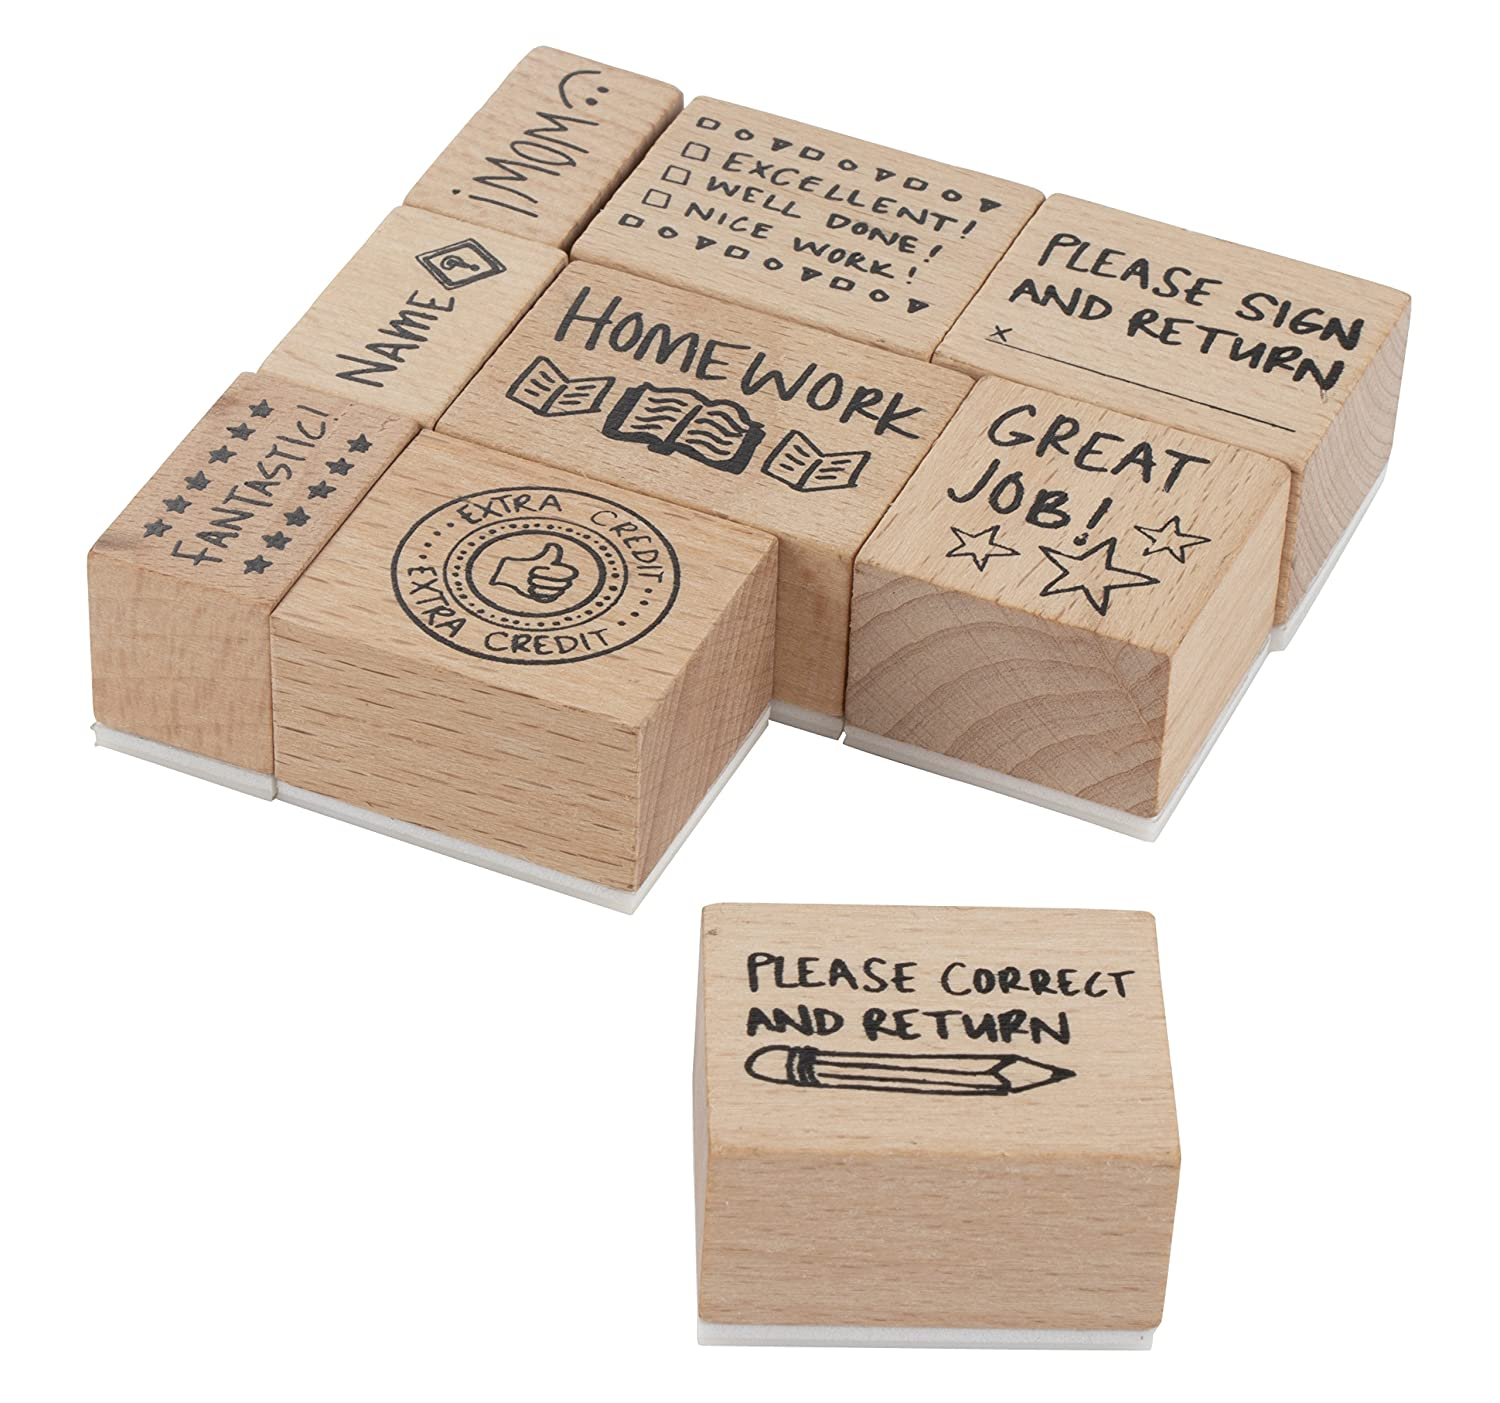 Paper Grading Stamps for Teachers Notes 9-Piece Wood Mounted Rubber Stamps Stamp Set for Teachers Classroom Supply Encouragement School Supply